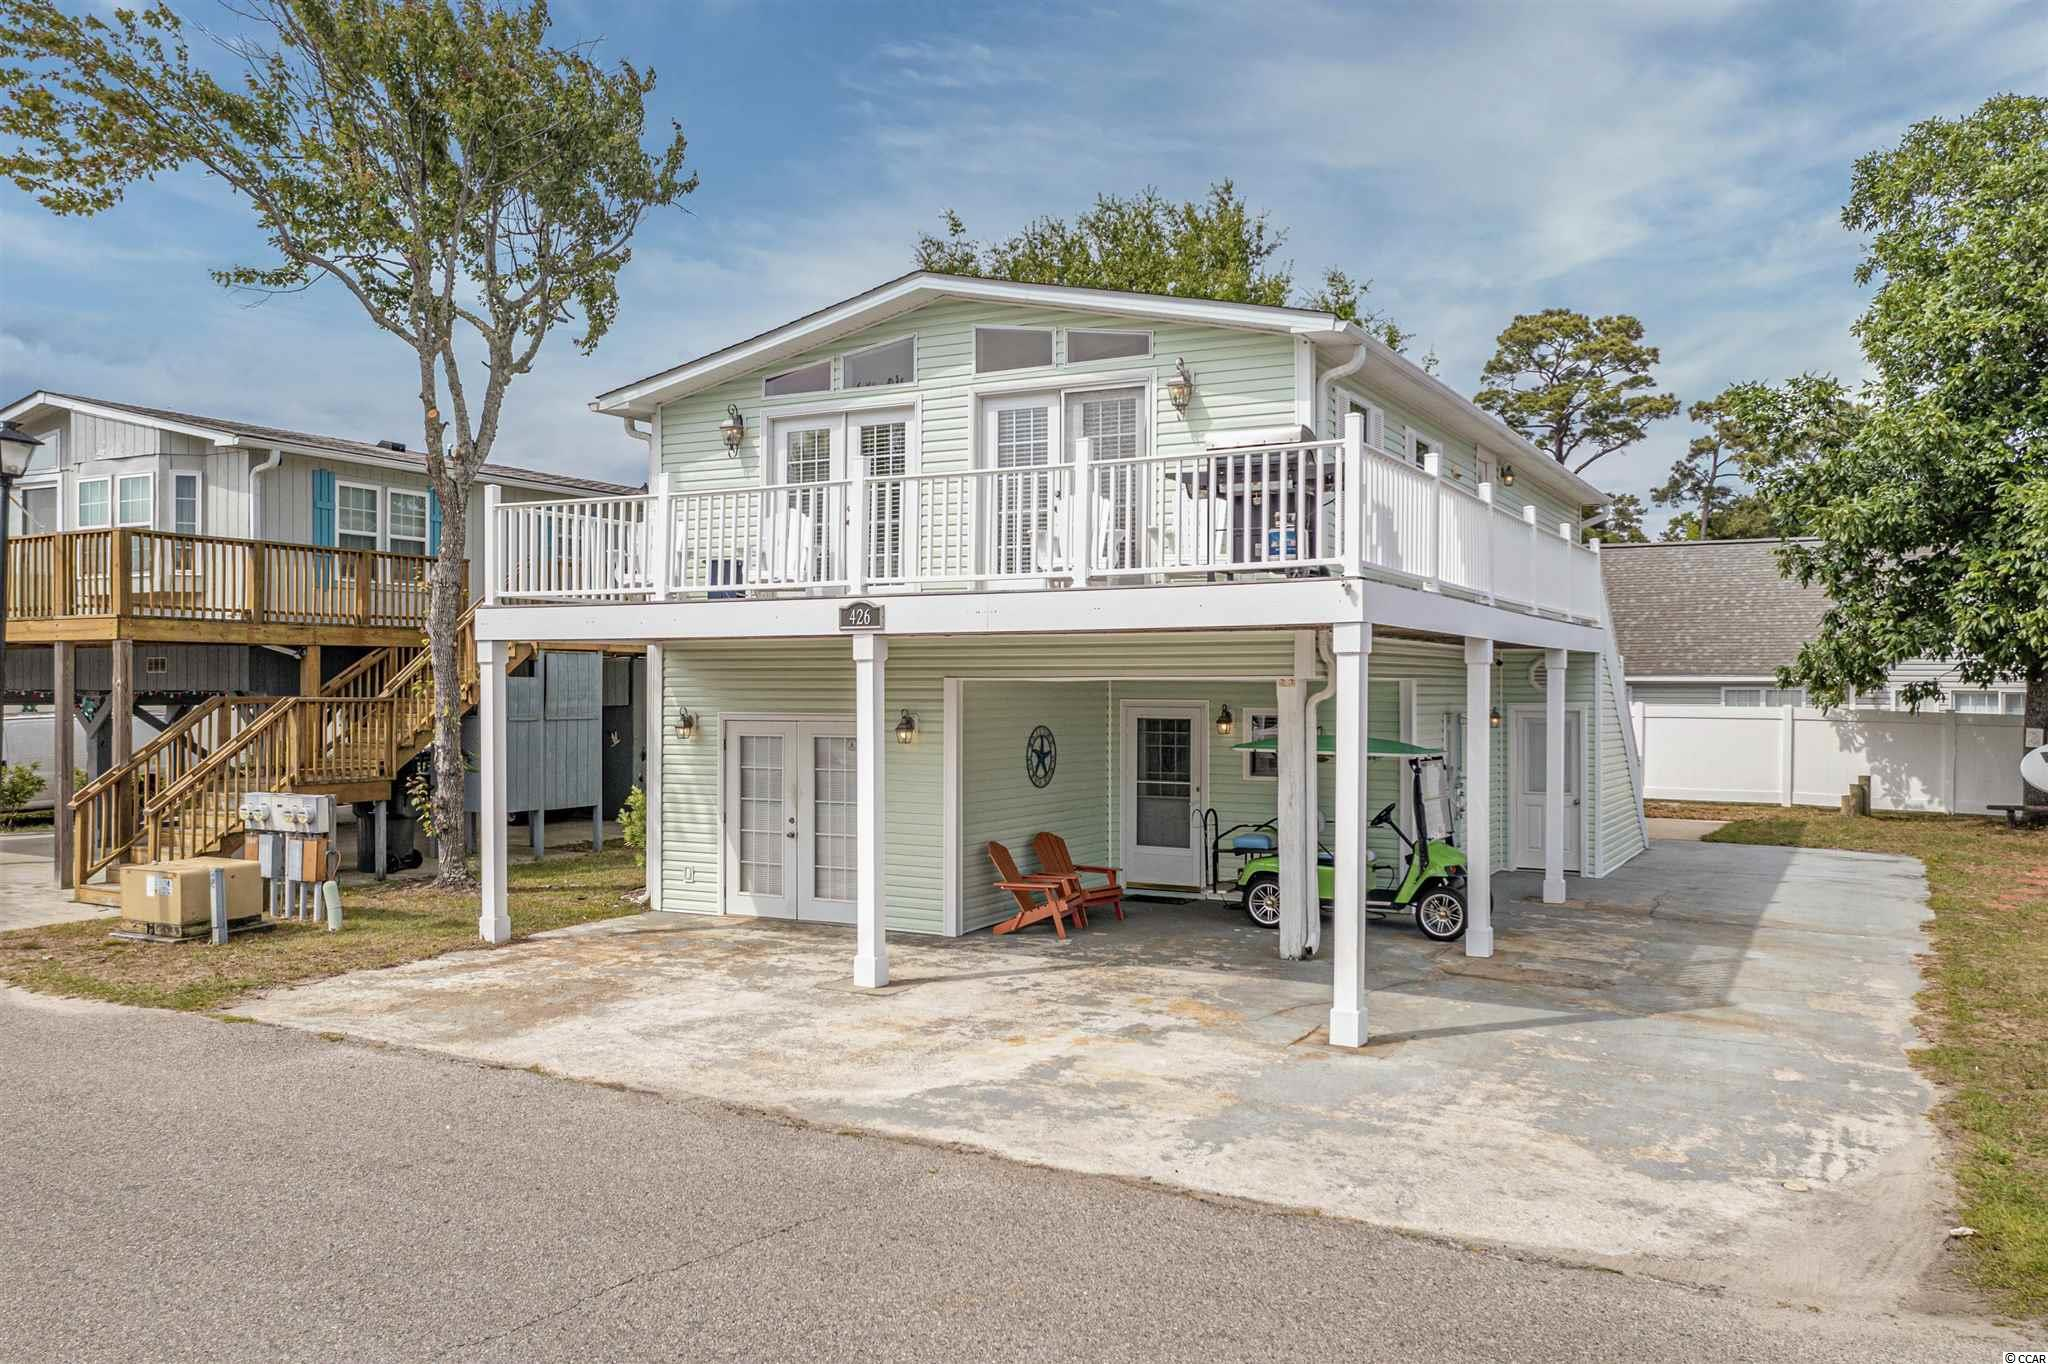 This beautifully presented raised beach home is full of coastal charm and comes adorned with custom features and upgrades throughout. Featuring an open layout with a spacious living area, 2 Bedrooms and 2 Full Bathrooms on the Main Level. In the heart of the home you will find a fabulous kitchen- perfect for entertaining. The generously proportioned interior flows effortlessly from living space to the wraparound deck where you can relax and unwind. On the lower level you will find a separate 2 Bed/1 Bath apartment with a full kitchen, large living/dining area, and a patio. This lovely turn-key home is being offered furnished and ready for you to enjoy for your personal use and/or investment opportunities. Set amongst manicured grounds within a private oceanfront community where you and your guests can enjoy resort-style amenities that include, indoor/outdoor pools, kiddie splash zone, hot tub, tennis/basketball courts, dog park, fitness center, private beach access, and much more. Located in Surfside Beach within walking distance to the beautiful sandy beaches, eateries, and local shops. Schedule your showing today.